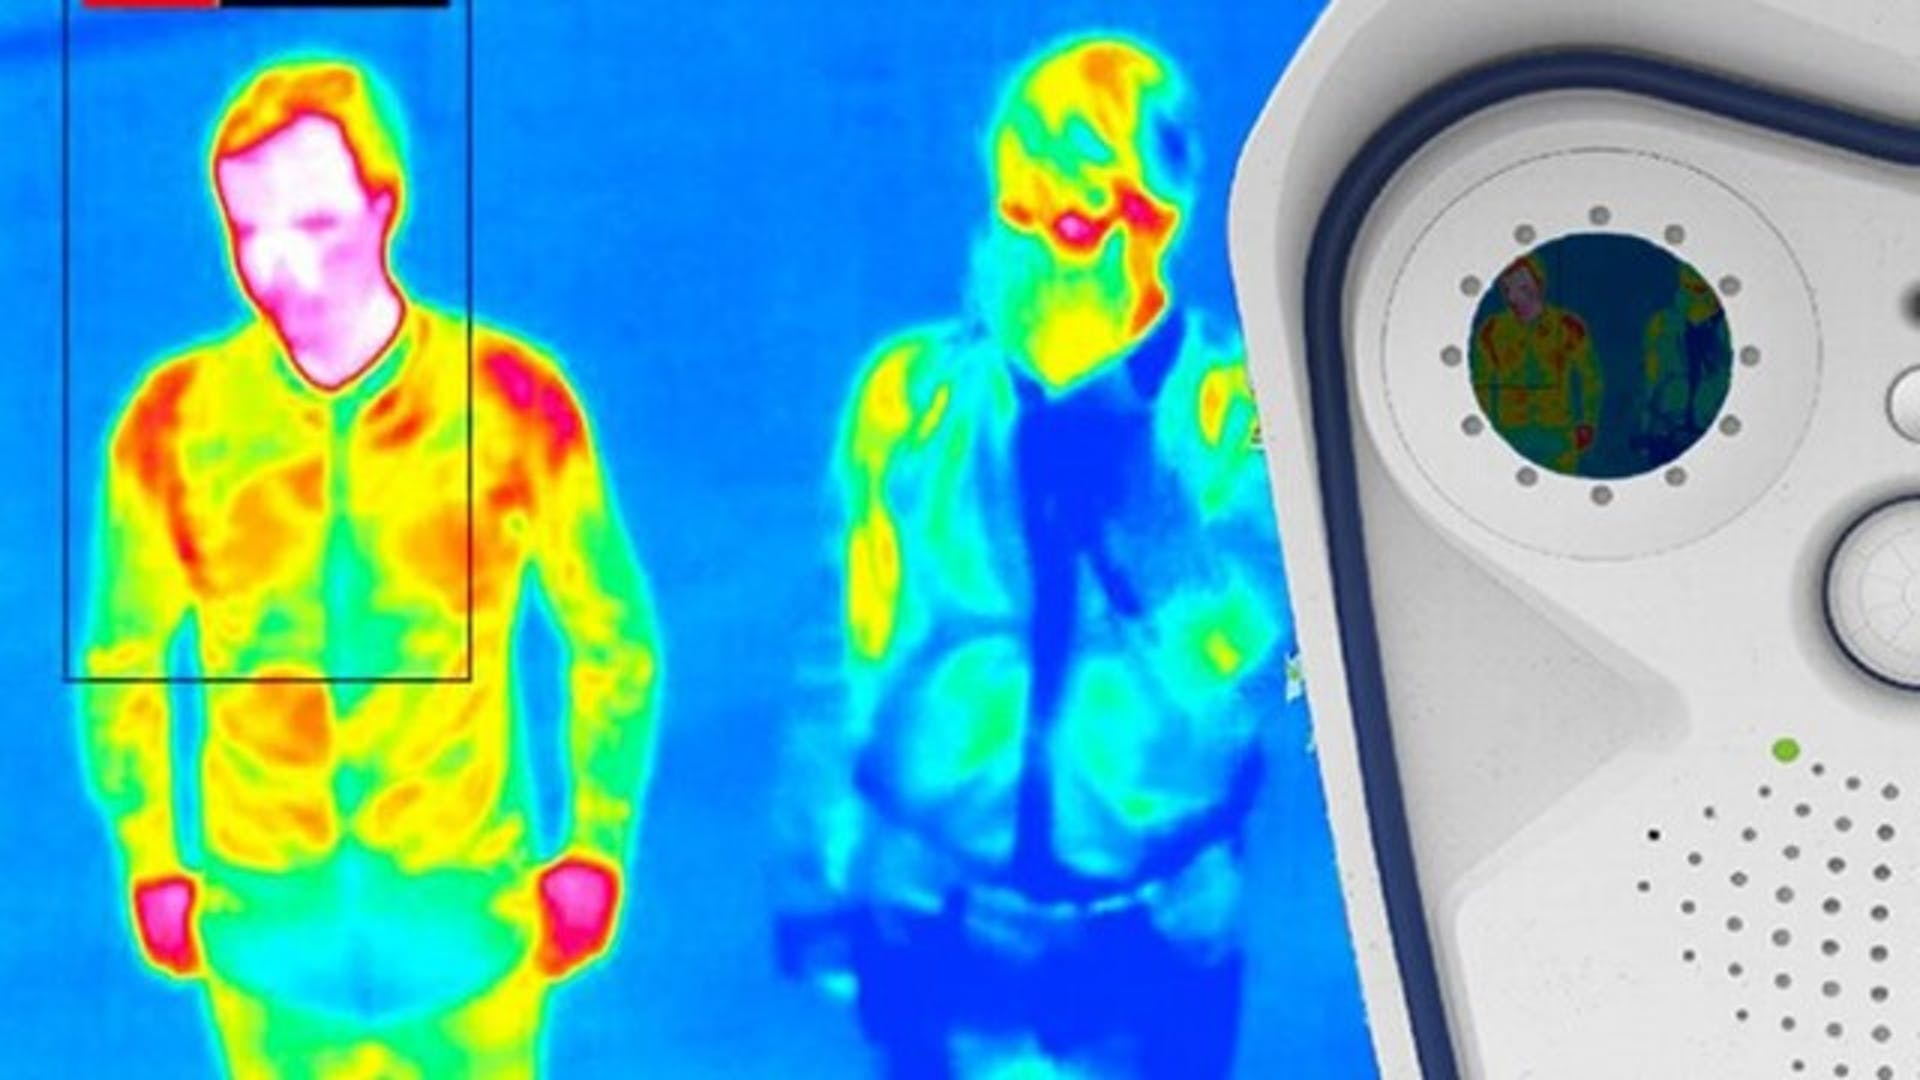 Thermal scan of passengers